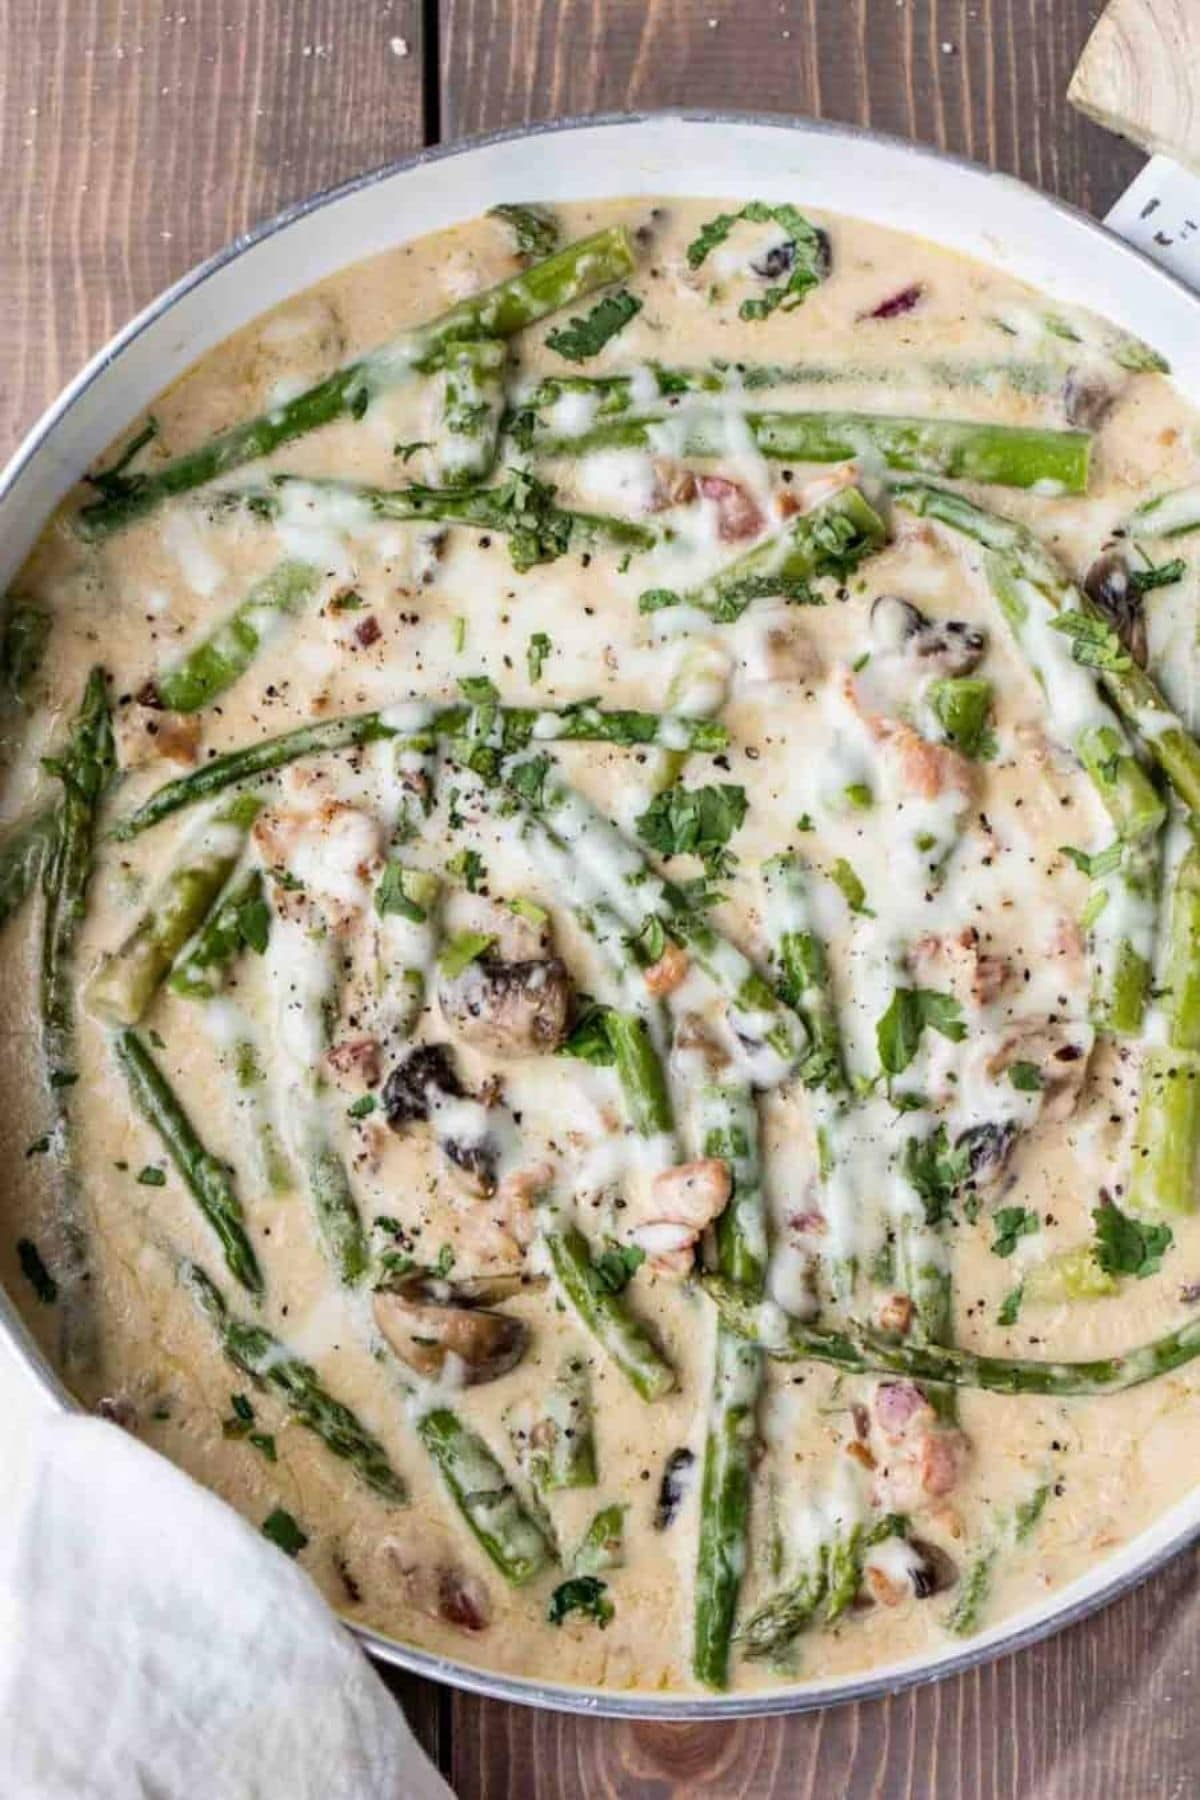 Skillet filled with cream sauce and asparagus